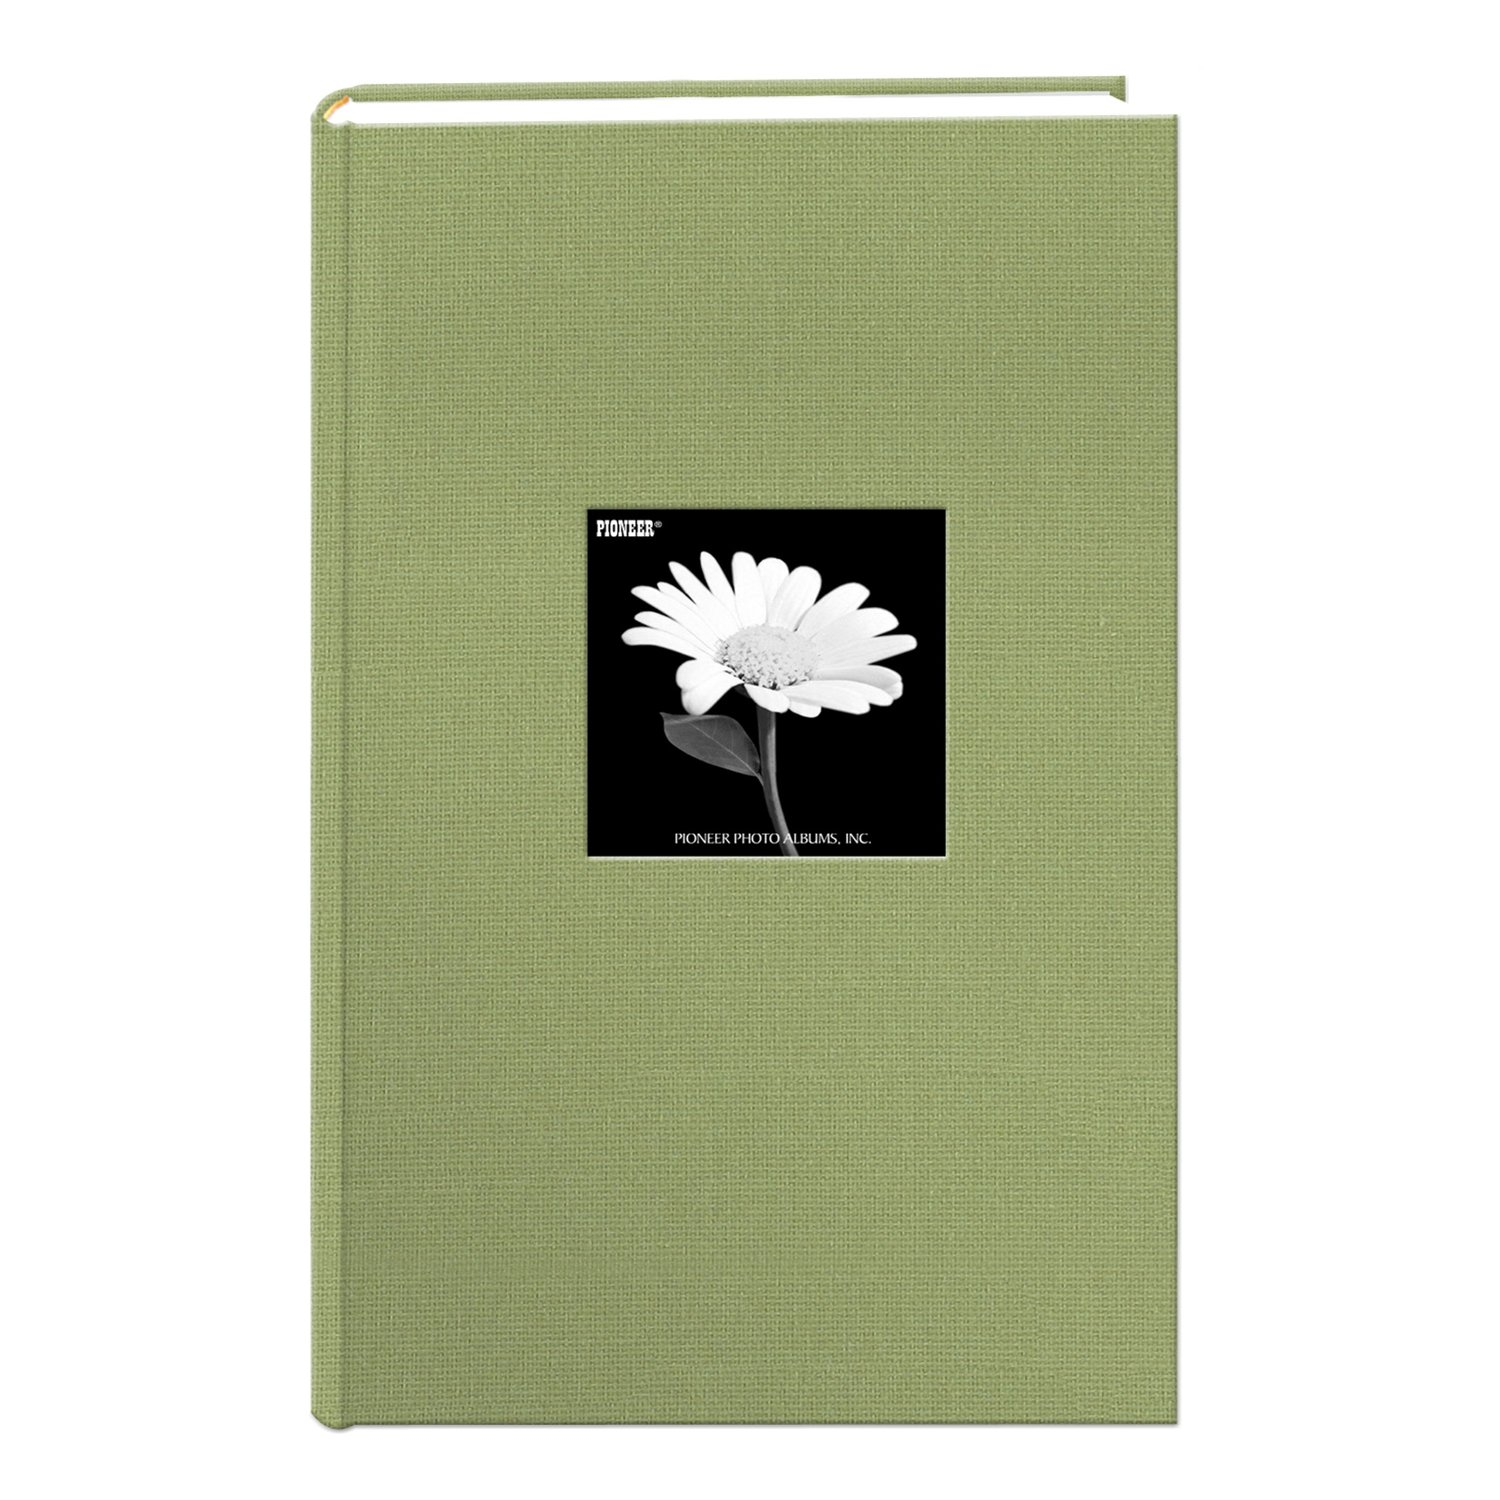 Pioneer 300 Pocket Fabric Frame Cover Photo Album Sage Green